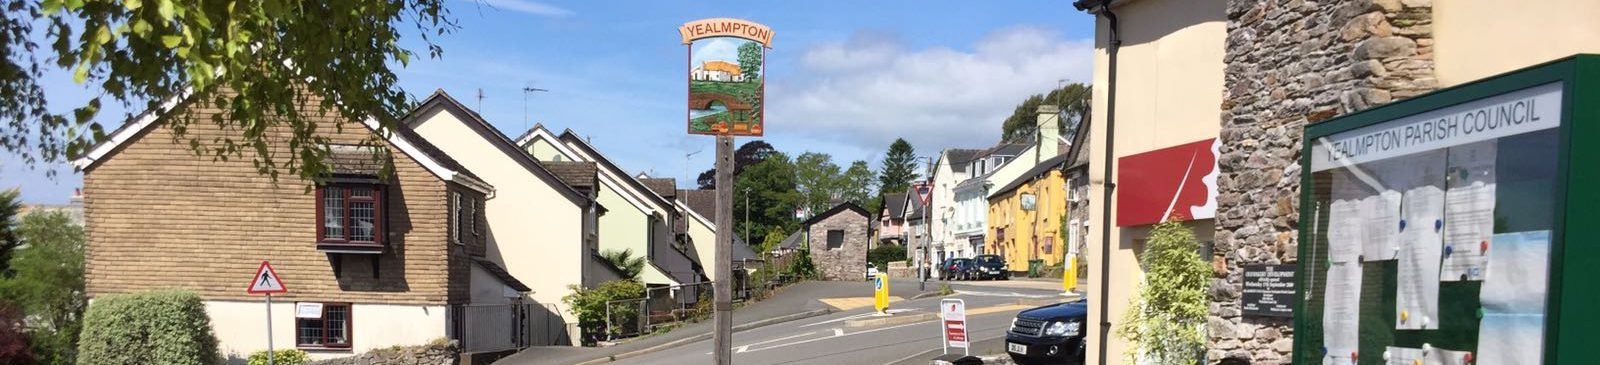 Yealmpton Parish Council